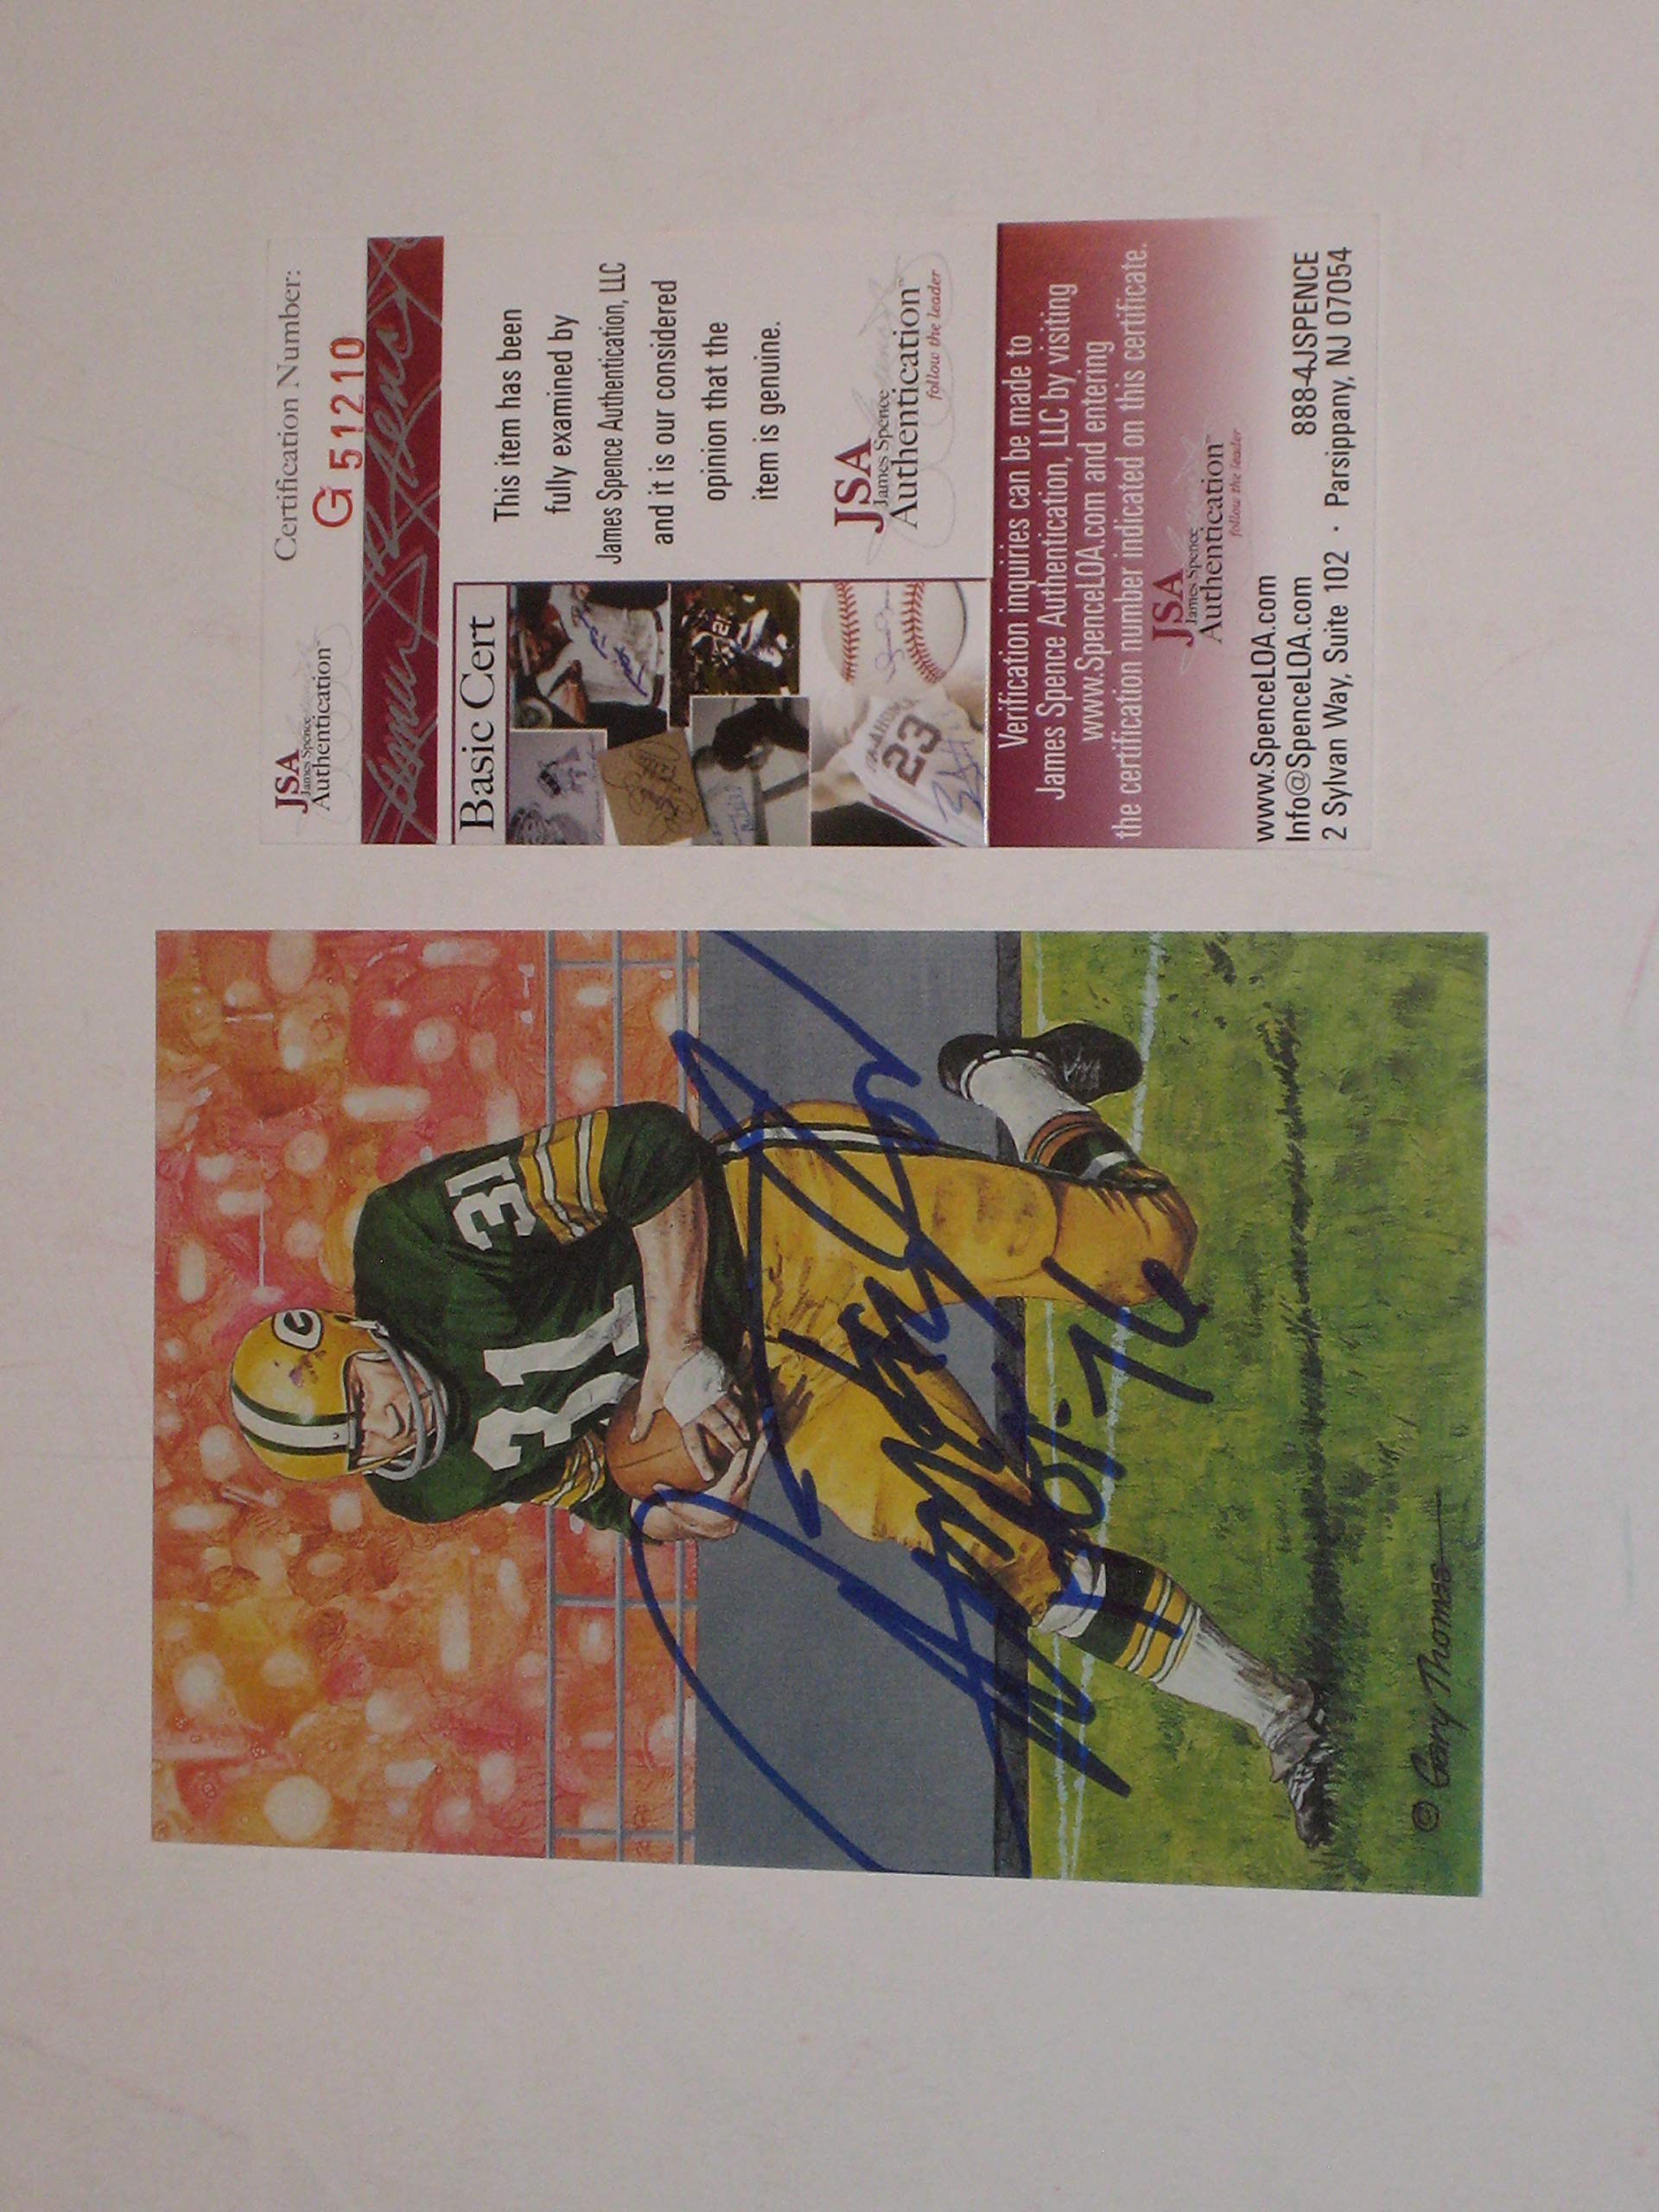 Jim Taylor Green Bay Packers Autographed Goal Line Art Card #2964/5000 (JSA COA)